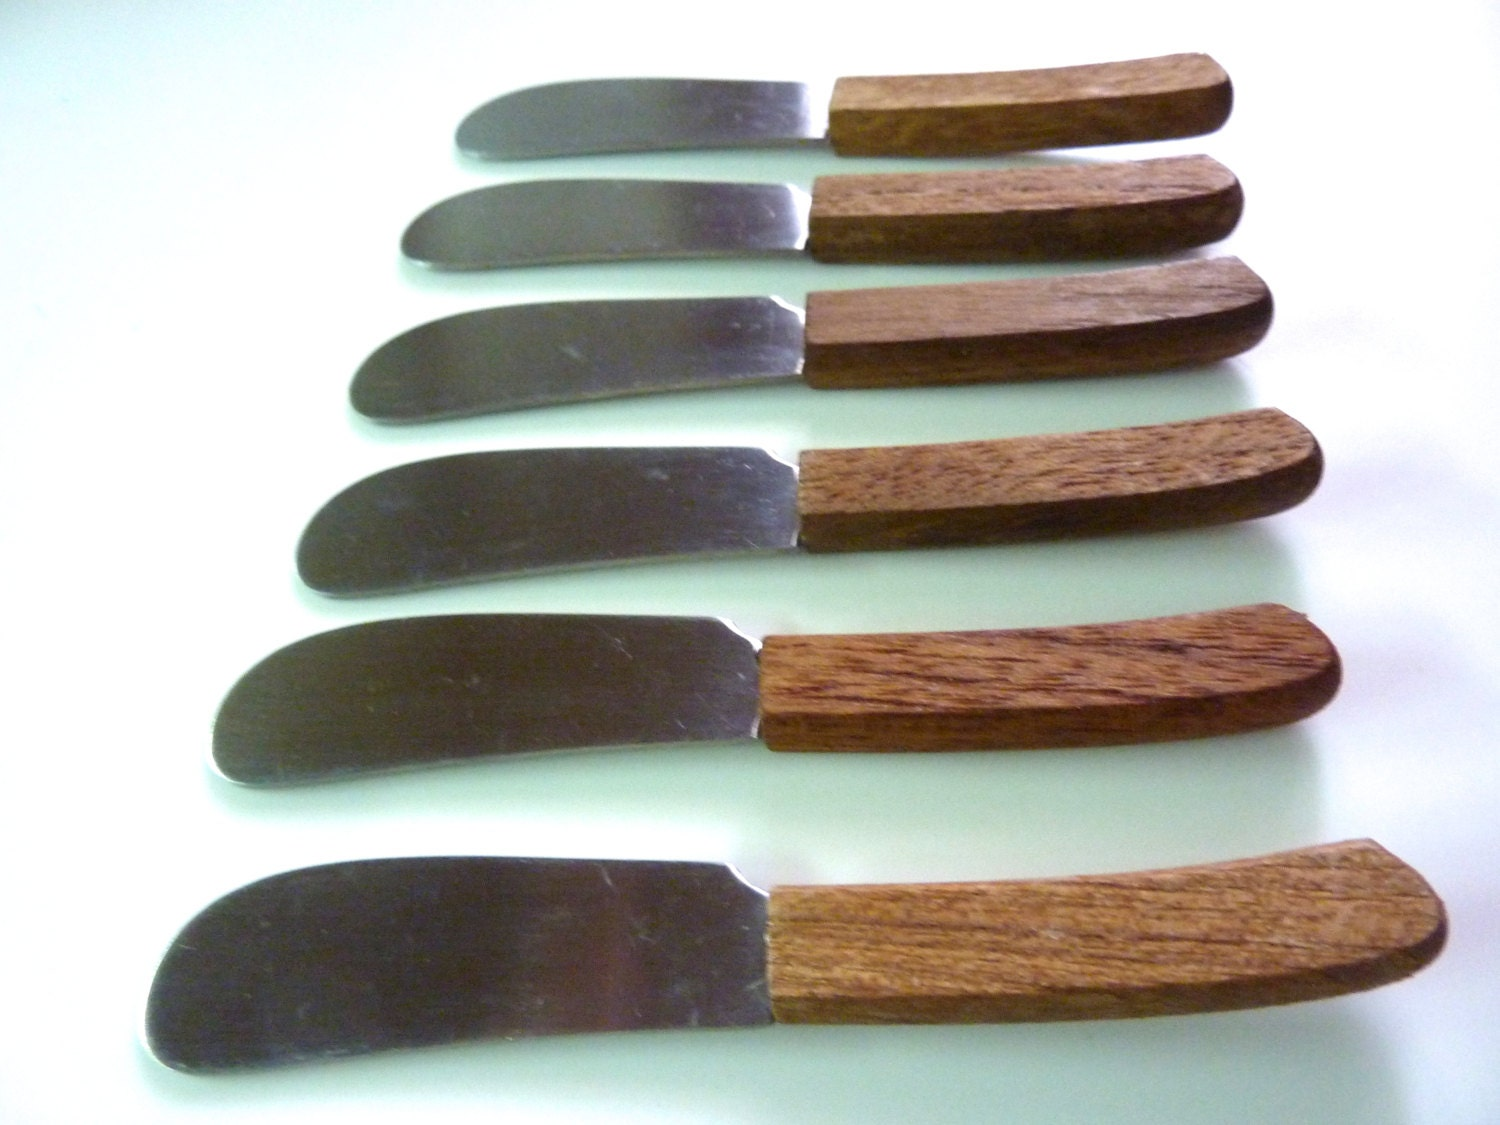 6 canap knives or spreaders stainless wood handle